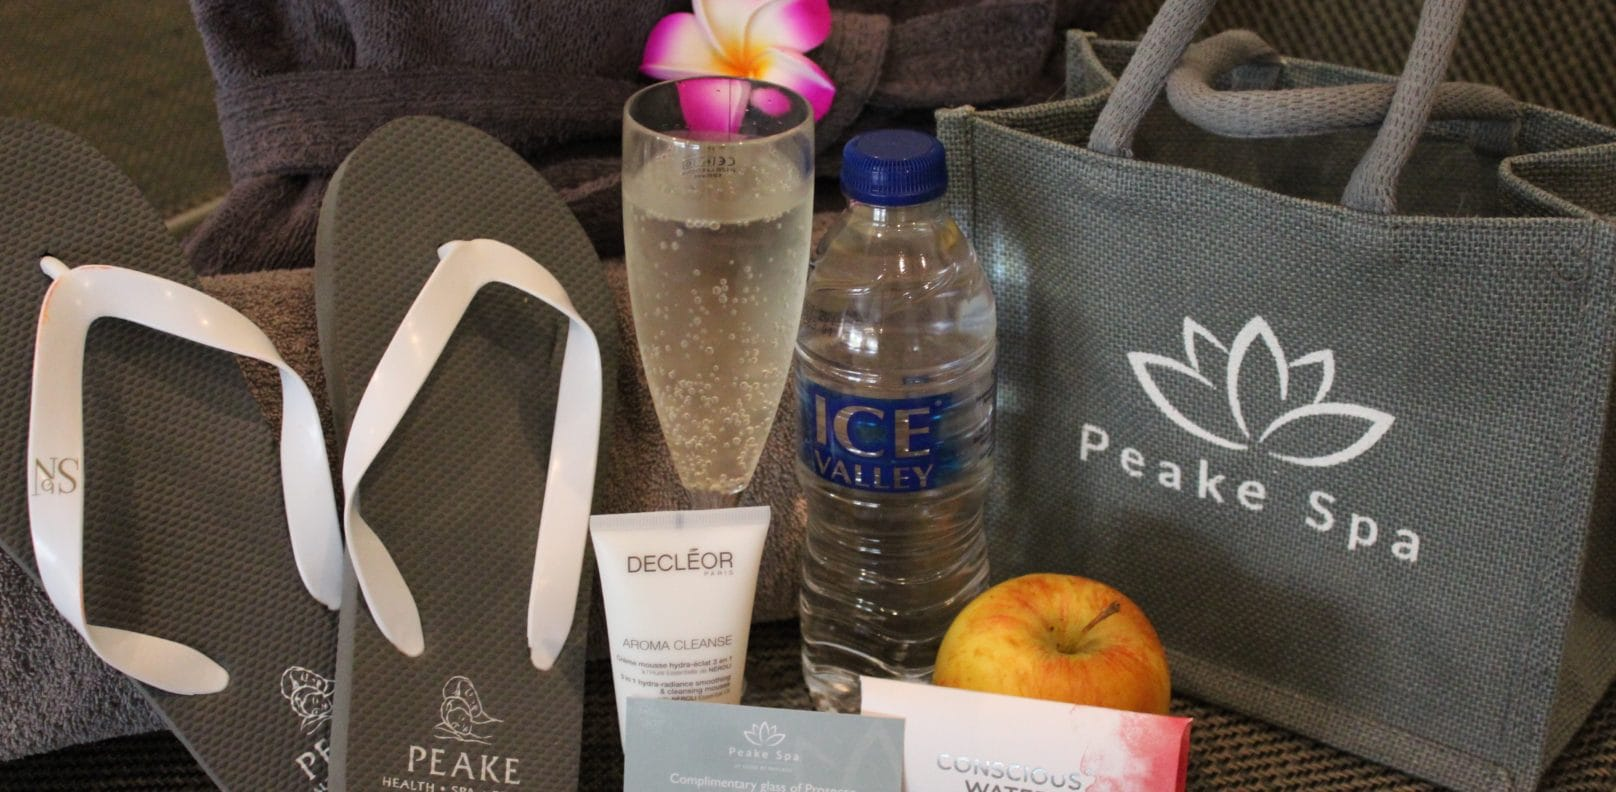 Spa Pass Goody bag